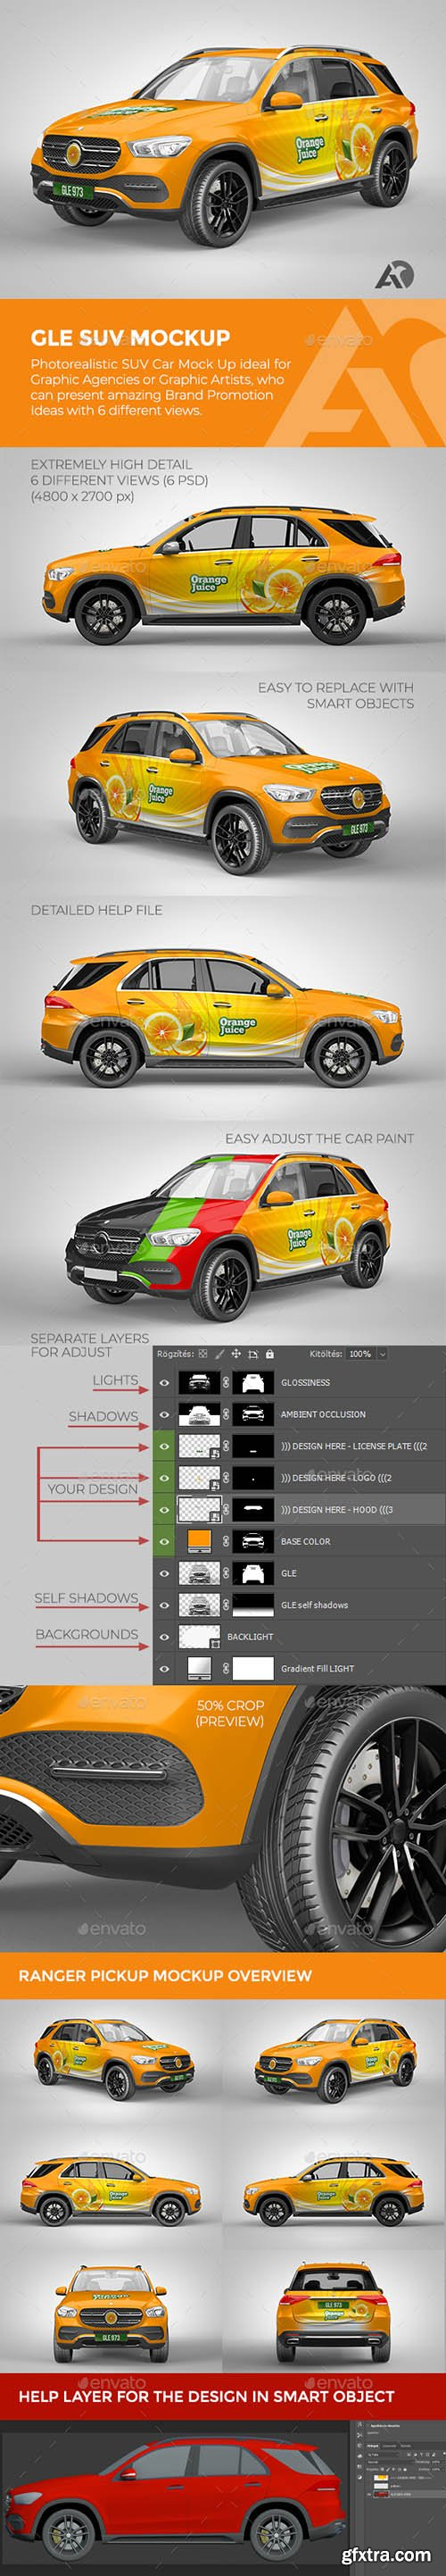 GraphicRiver - GLE SUV Mock Up for Brand Promotions 27936404